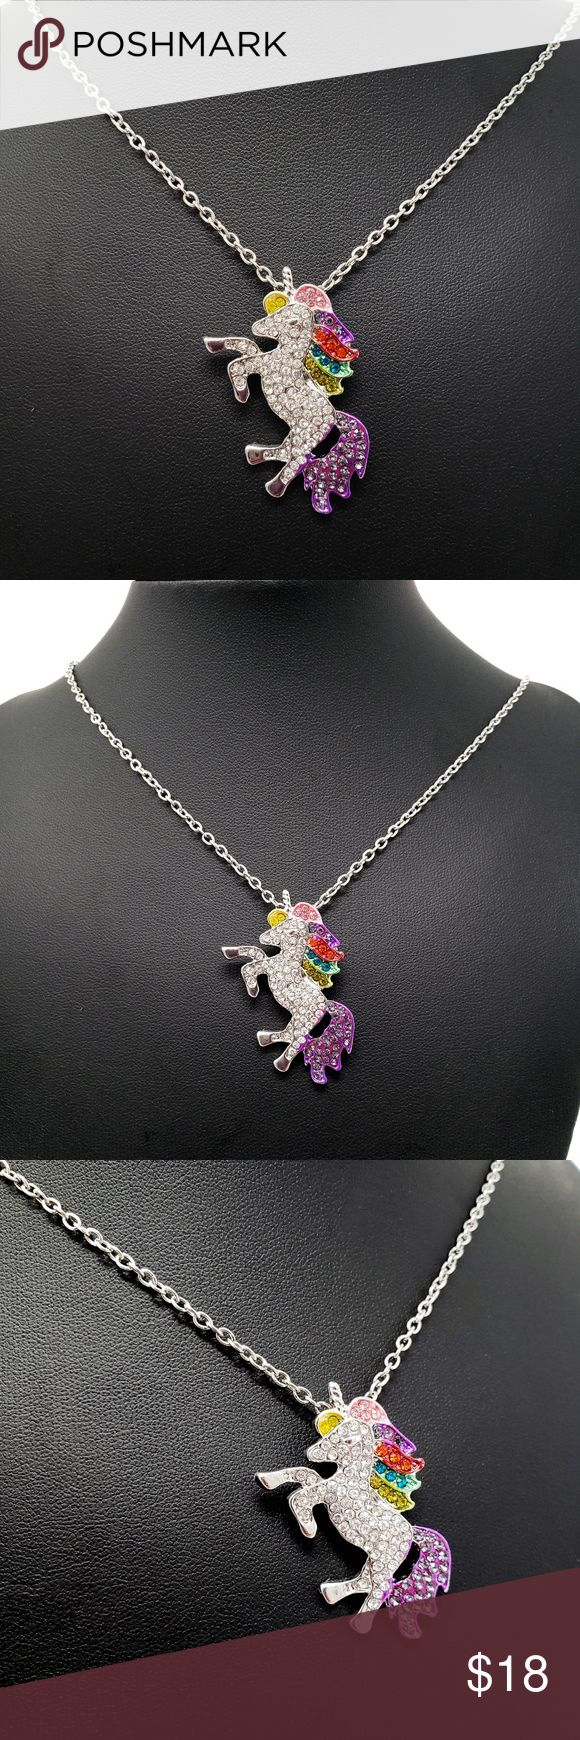 Crystal Rainbow Unicorn Necklace Unicorns ARE real! For